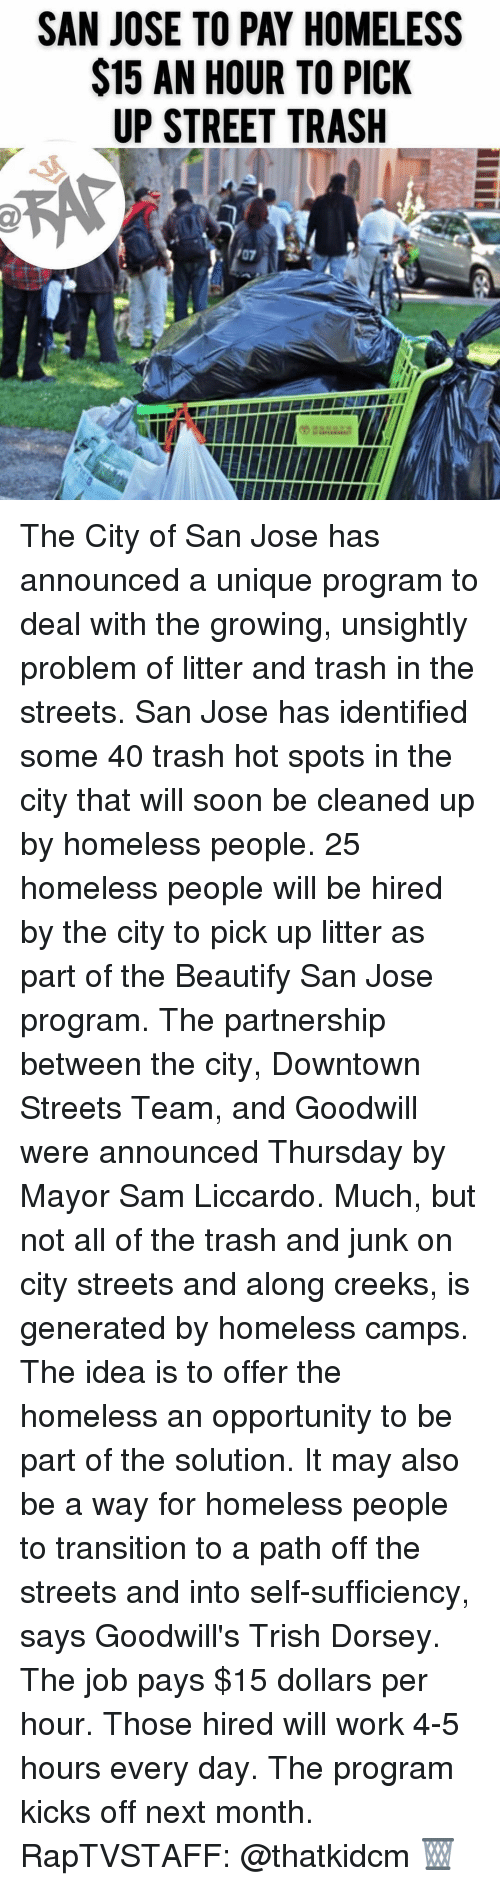 Homeless, Memes, and Soon...: SAN JOSE TO PAY HOMELESS  $15 AN HOUR TO PICK  UP STREET TRASH The City of San Jose has announced a unique program to deal with the growing, unsightly problem of litter and trash in the streets. San Jose has identified some 40 trash hot spots in the city that will soon be cleaned up by homeless people. 25 homeless people will be hired by the city to pick up litter as part of the Beautify San Jose program. The partnership between the city, Downtown Streets Team, and Goodwill were announced Thursday by Mayor Sam Liccardo. Much, but not all of the trash and junk on city streets and along creeks, is generated by homeless camps. The idea is to offer the homeless an opportunity to be part of the solution. It may also be a way for homeless people to transition to a path off the streets and into self-sufficiency, says Goodwill's Trish Dorsey. The job pays $15 dollars per hour. Those hired will work 4-5 hours every day. The program kicks off next month. RapTVSTAFF: @thatkidcm 🗑